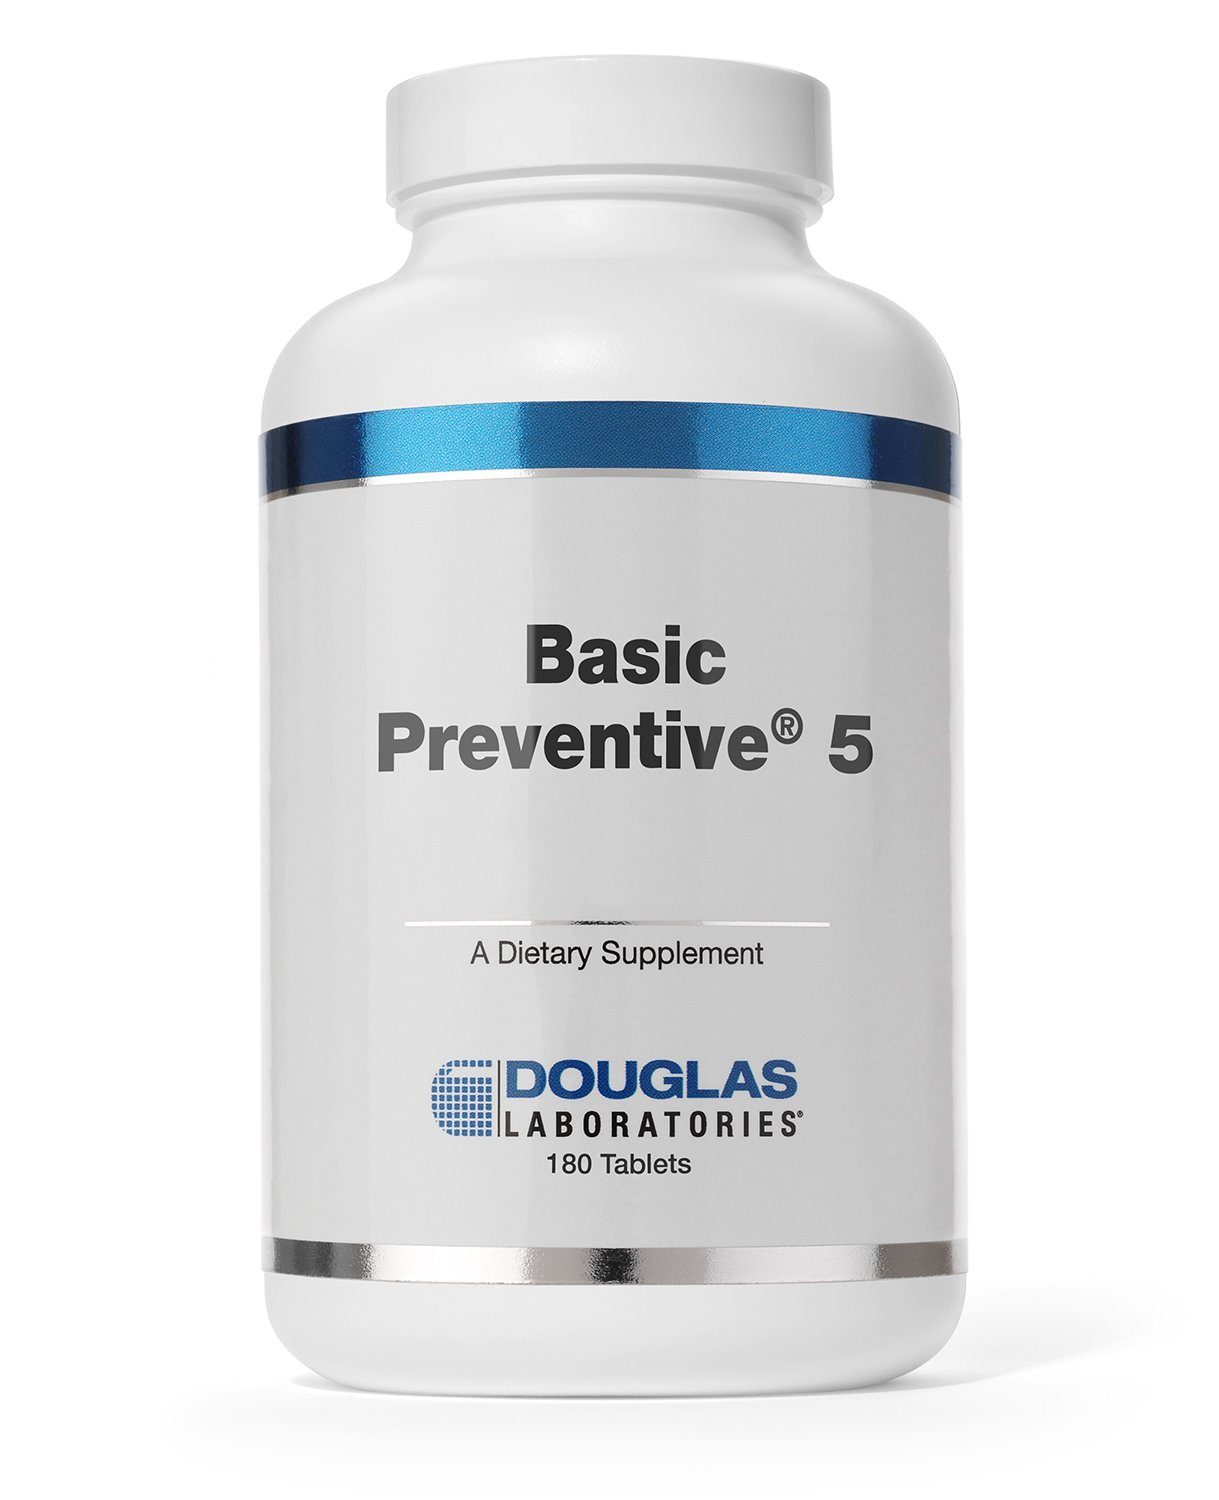 Douglas Laboratories - Basic Preventive 5 - Iron-Free Highly Concentrated Vitamin/Mineral / Trace Element Supplement with Antioxidants - 180 Tablets